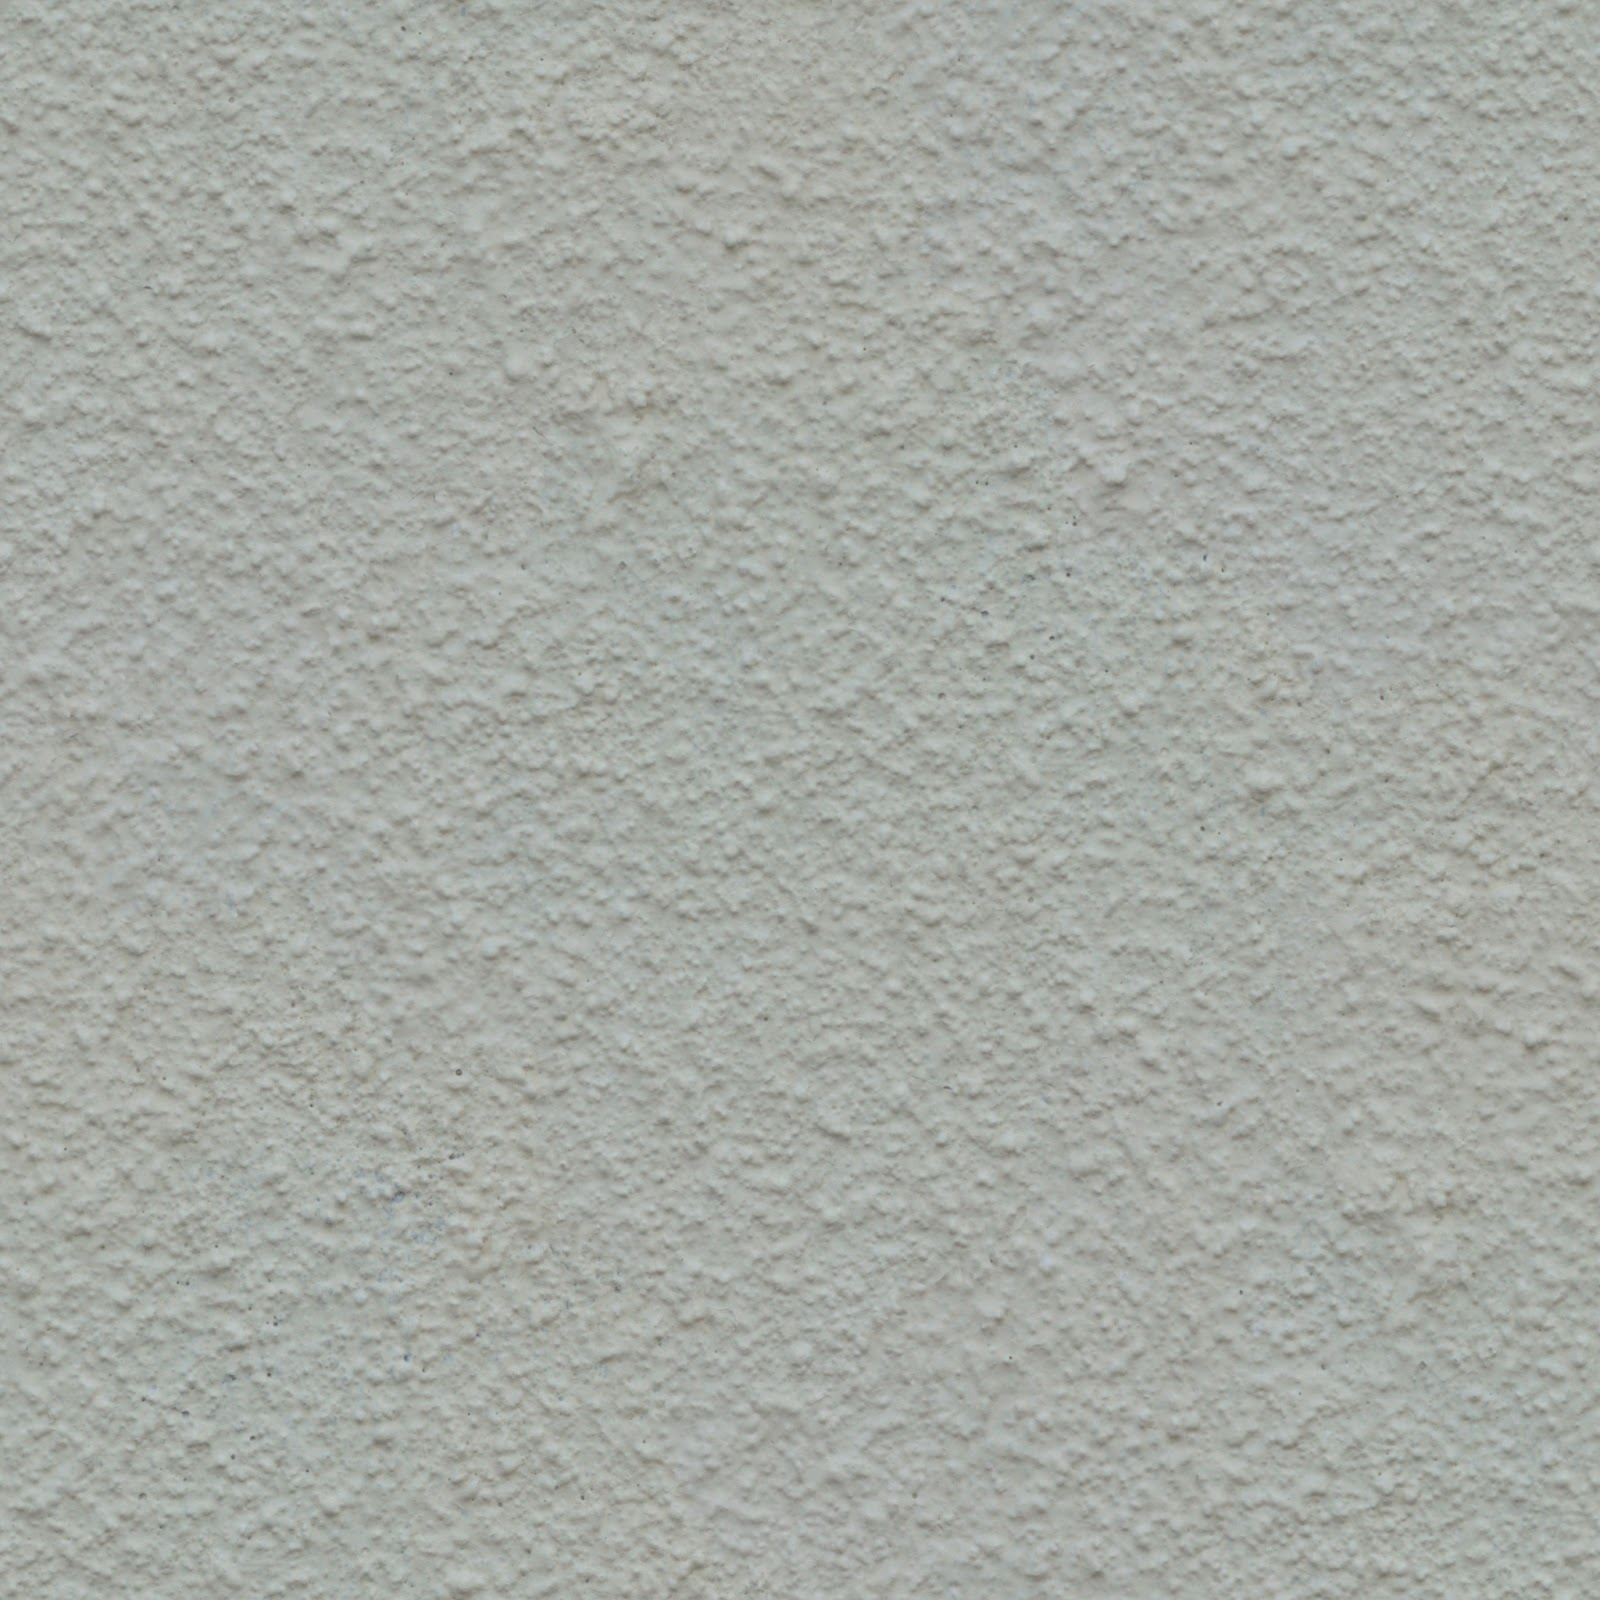 White stucco plaster wall paper seamless texture ver4 2048x2048